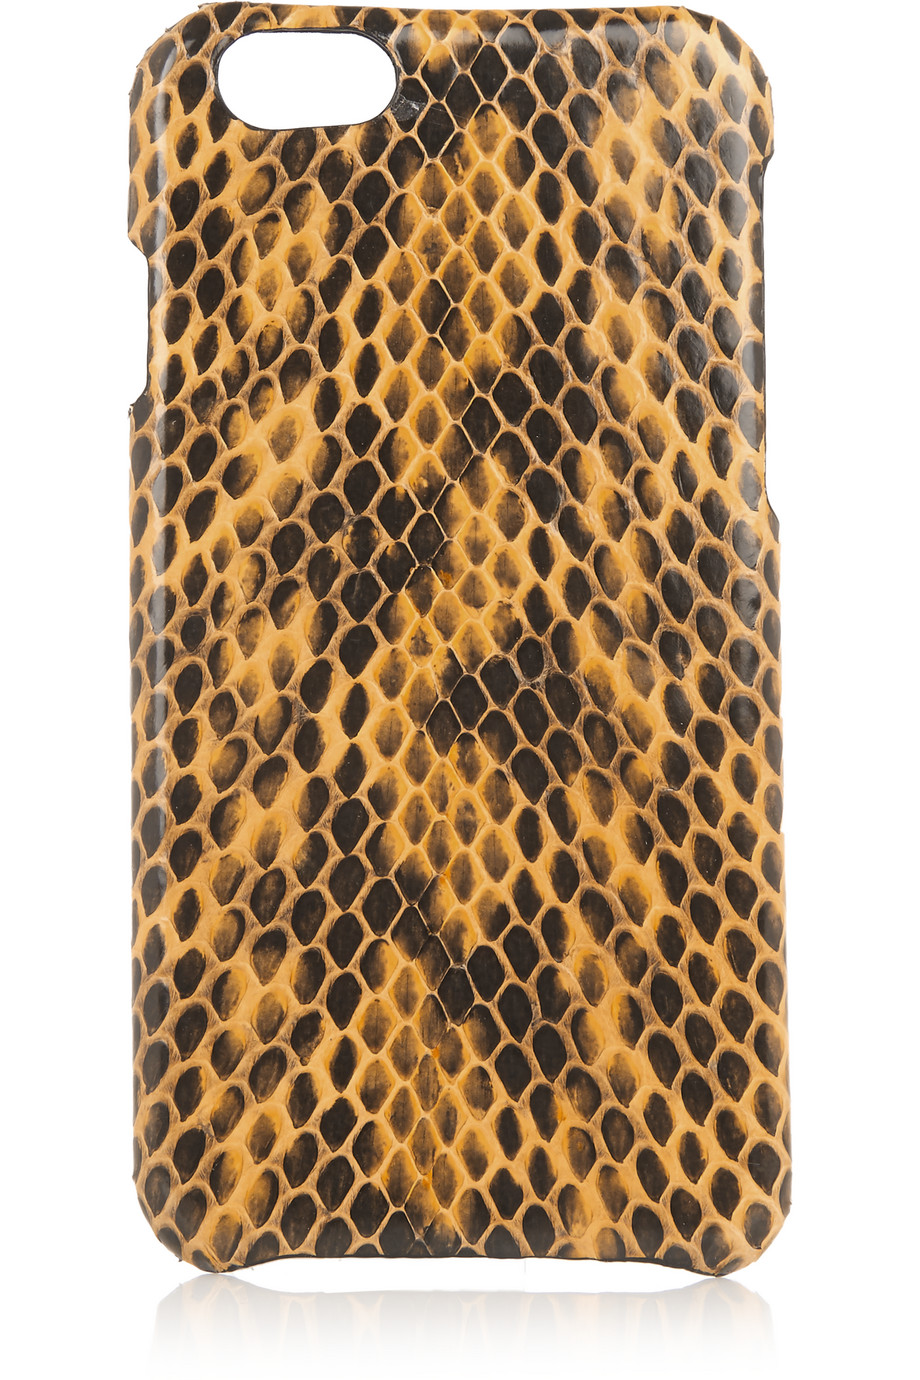 Watersnake Iphone 6 Case, The Case Factory